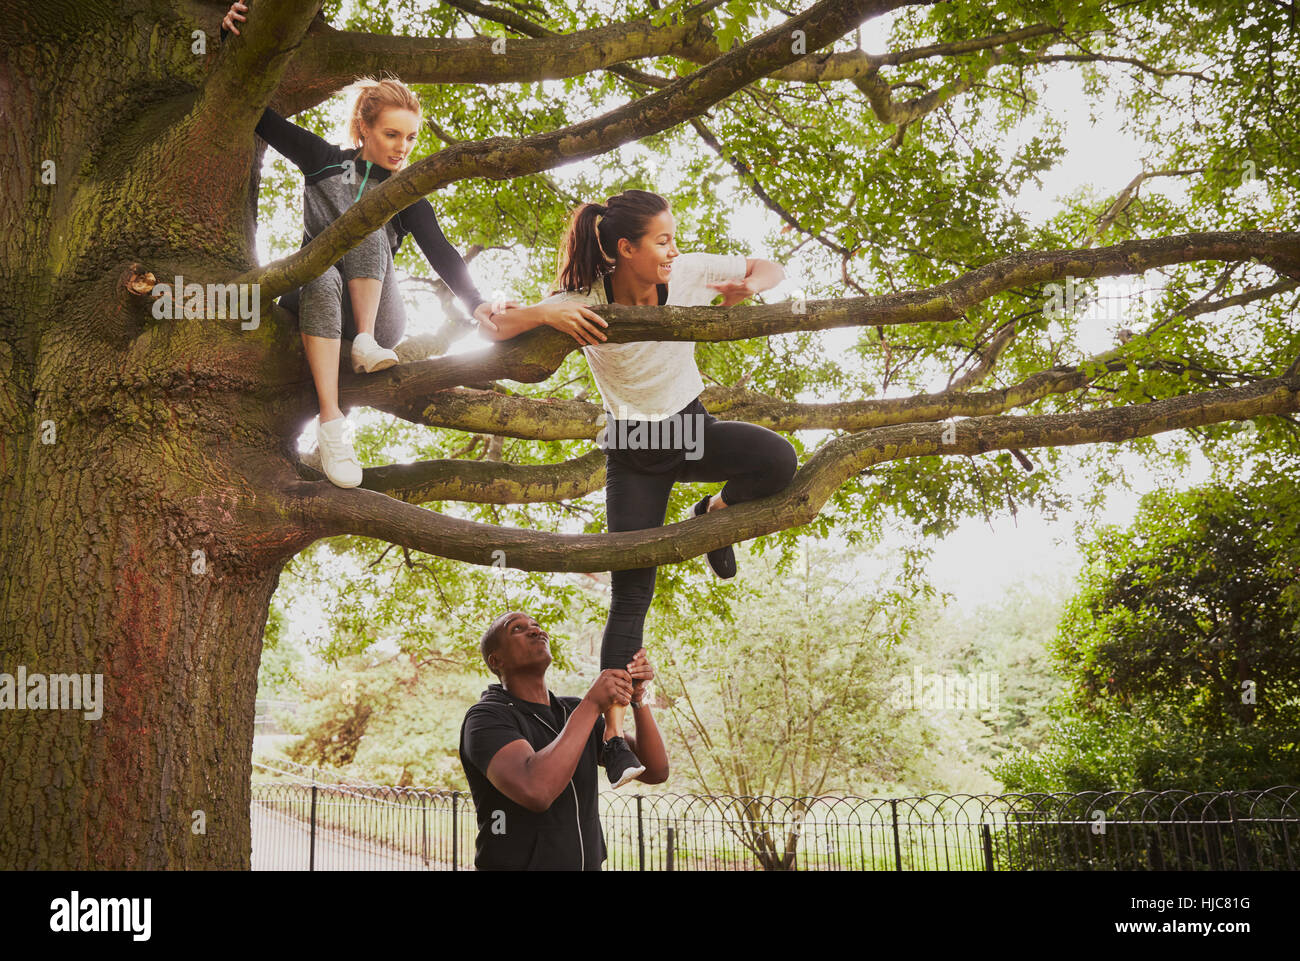 Personal trainer giving woman helping hand to climb park tree - Stock Image